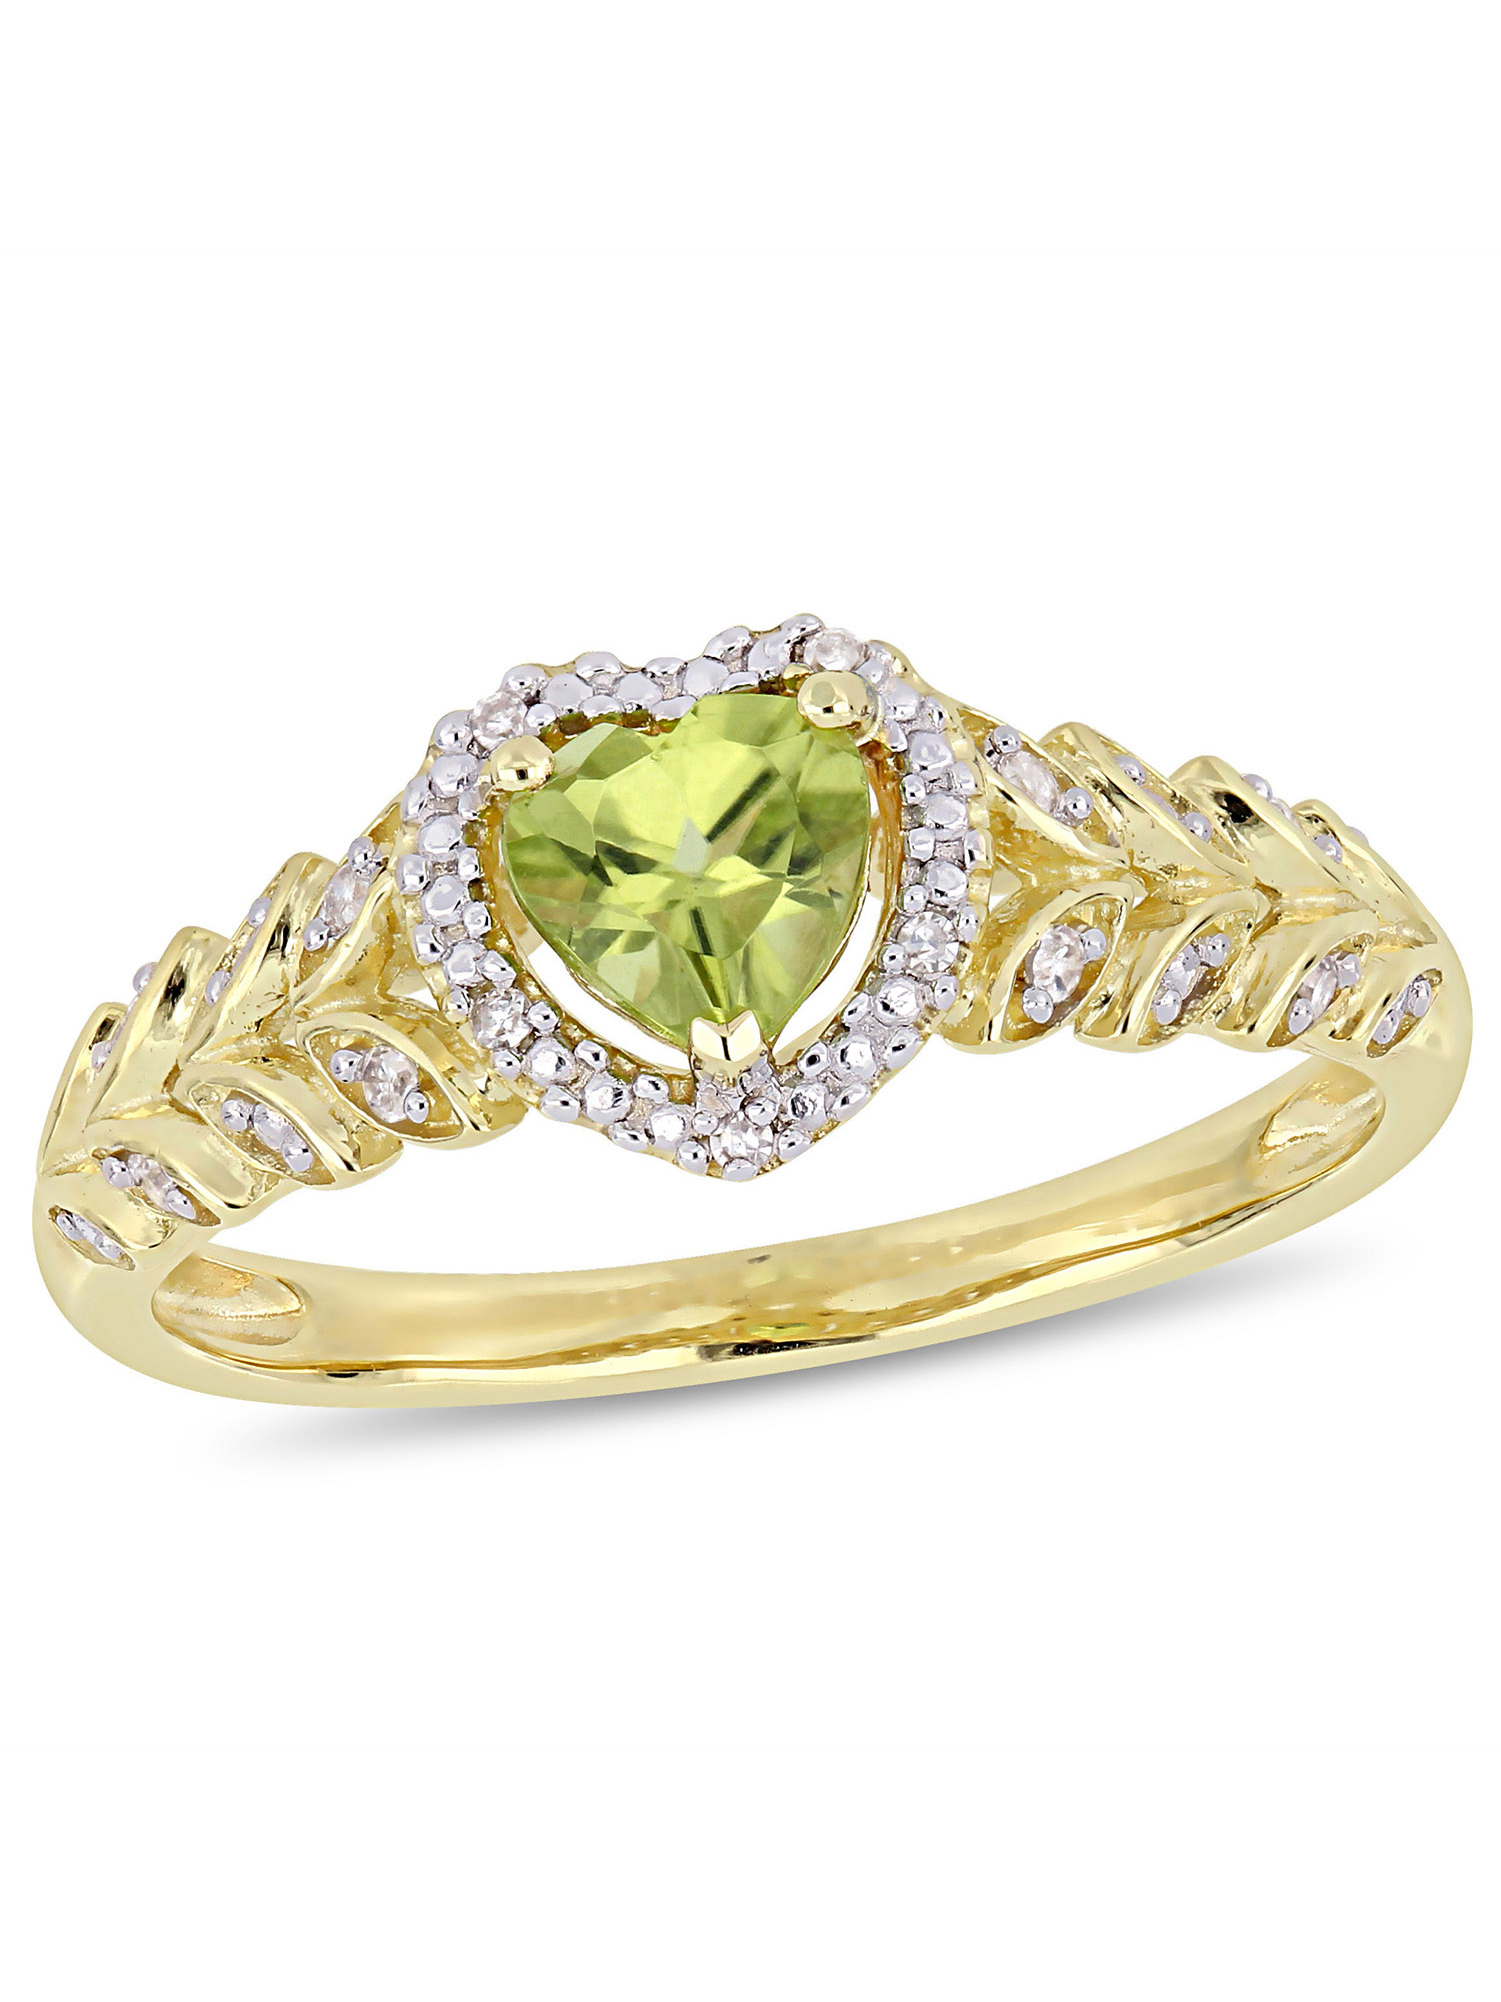 Tangelo 1 2 Carat T.G.W. Peridot and Diamond-Accent 10kt Yellow Gold Heart Halo Ring by Delmar